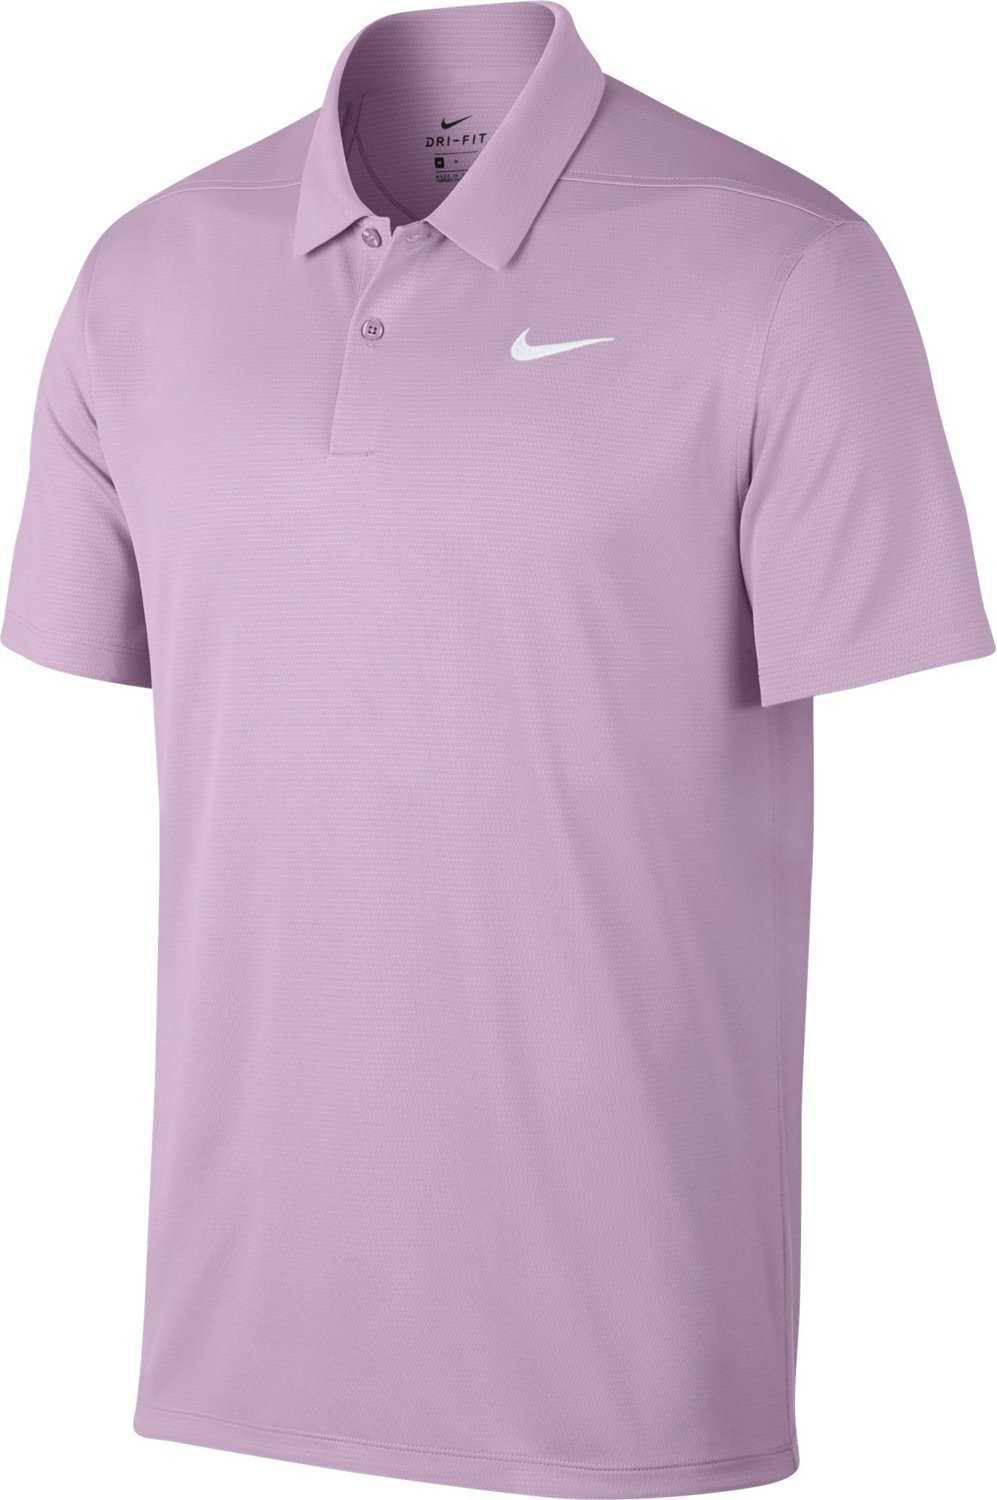 2a8fd341 Display product reviews for Nike Men's Dri-FIT Golf Polo Shirt